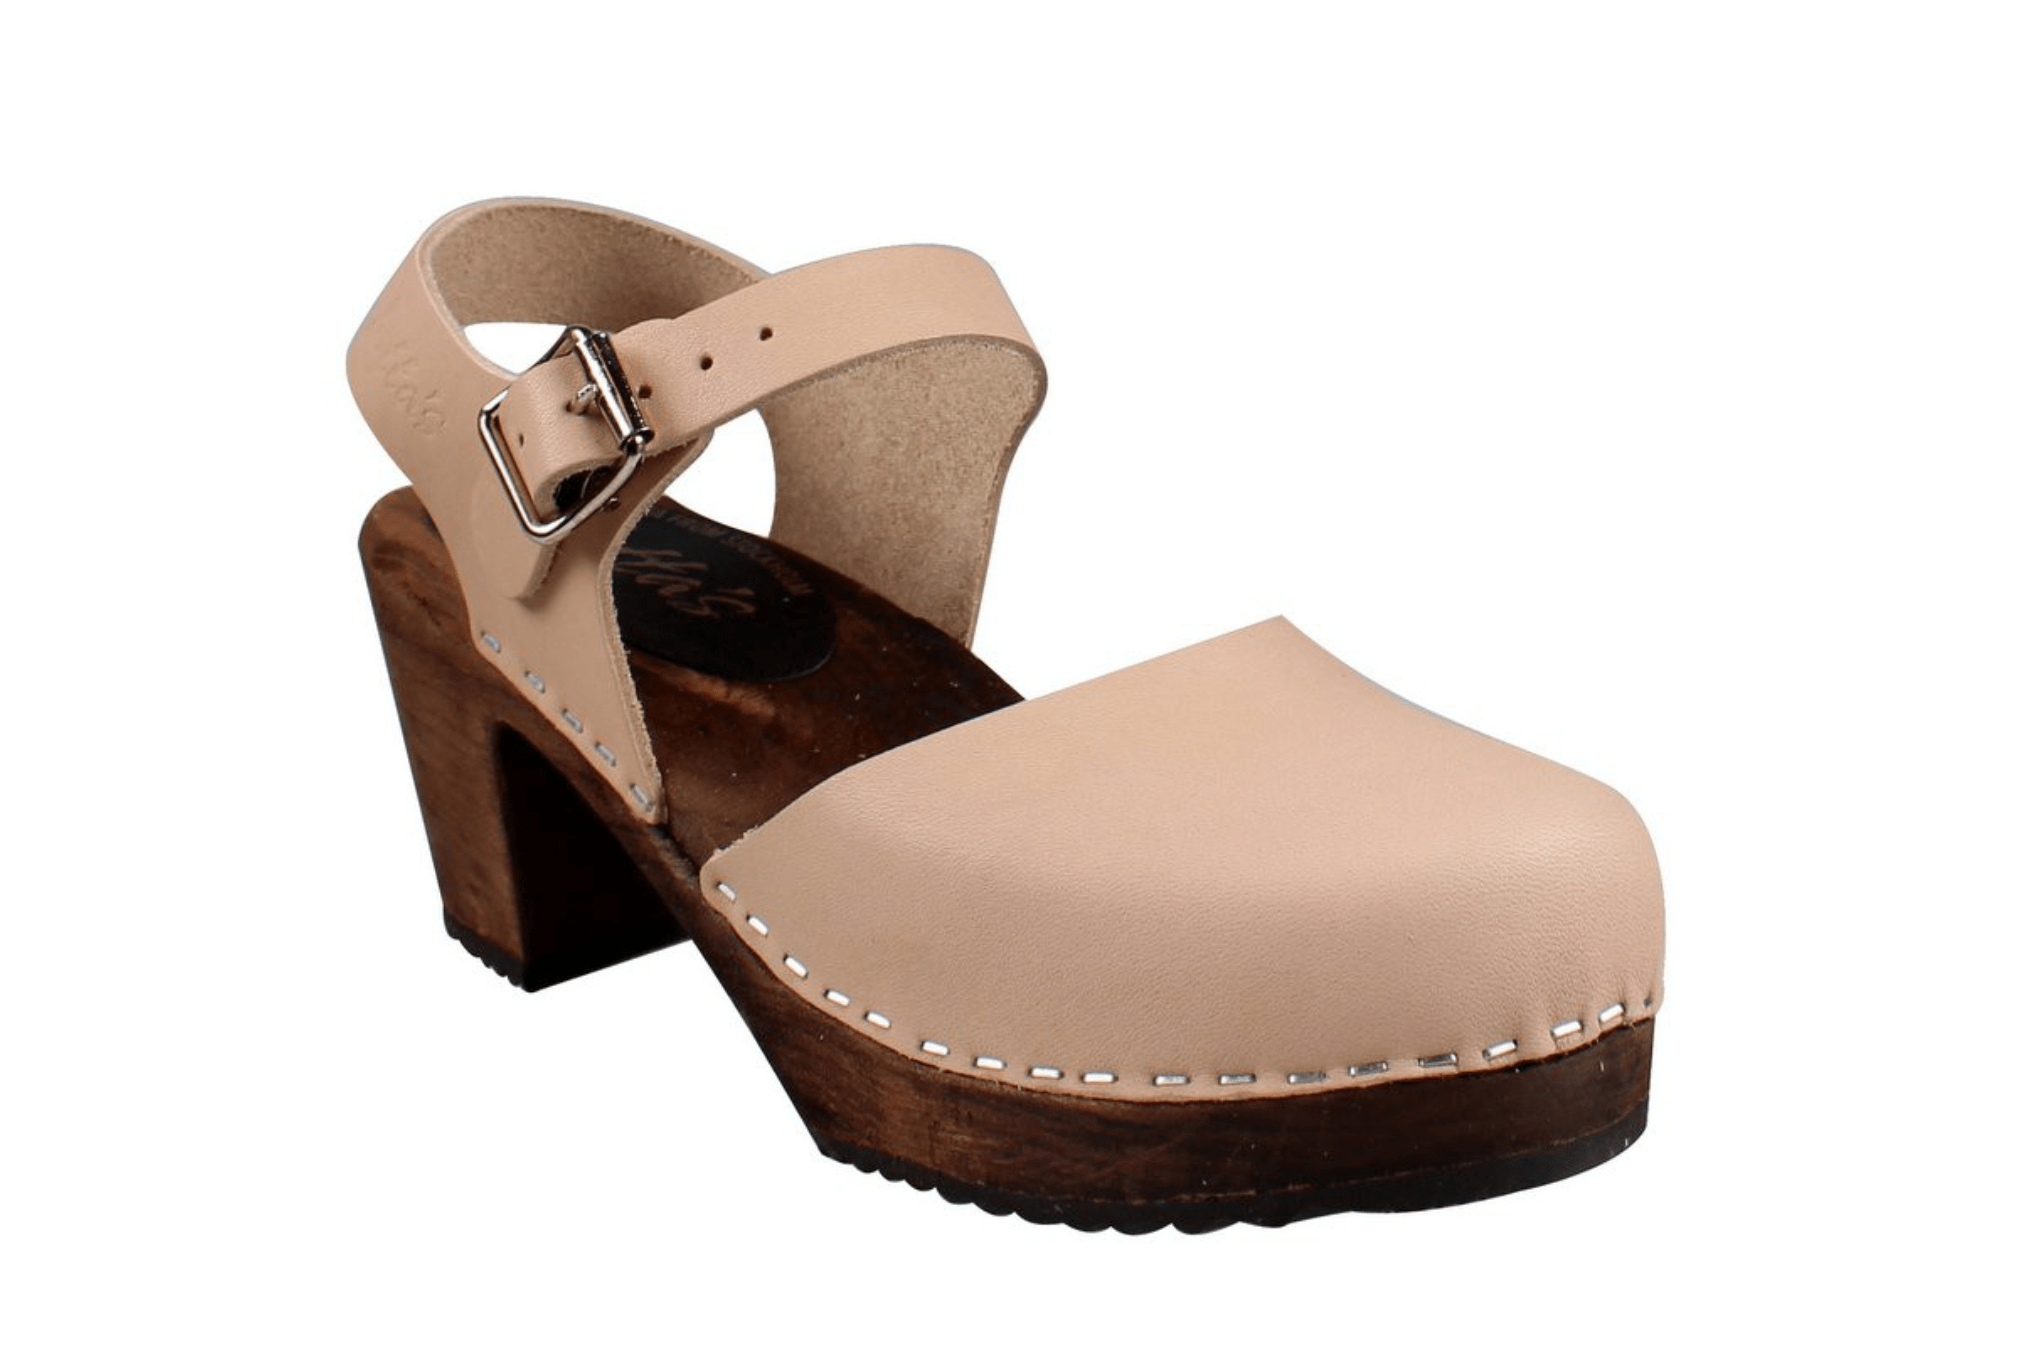 Lotta Mary Jane 561 dark high wood ankle strap Swedish clog in  cappuccino leather